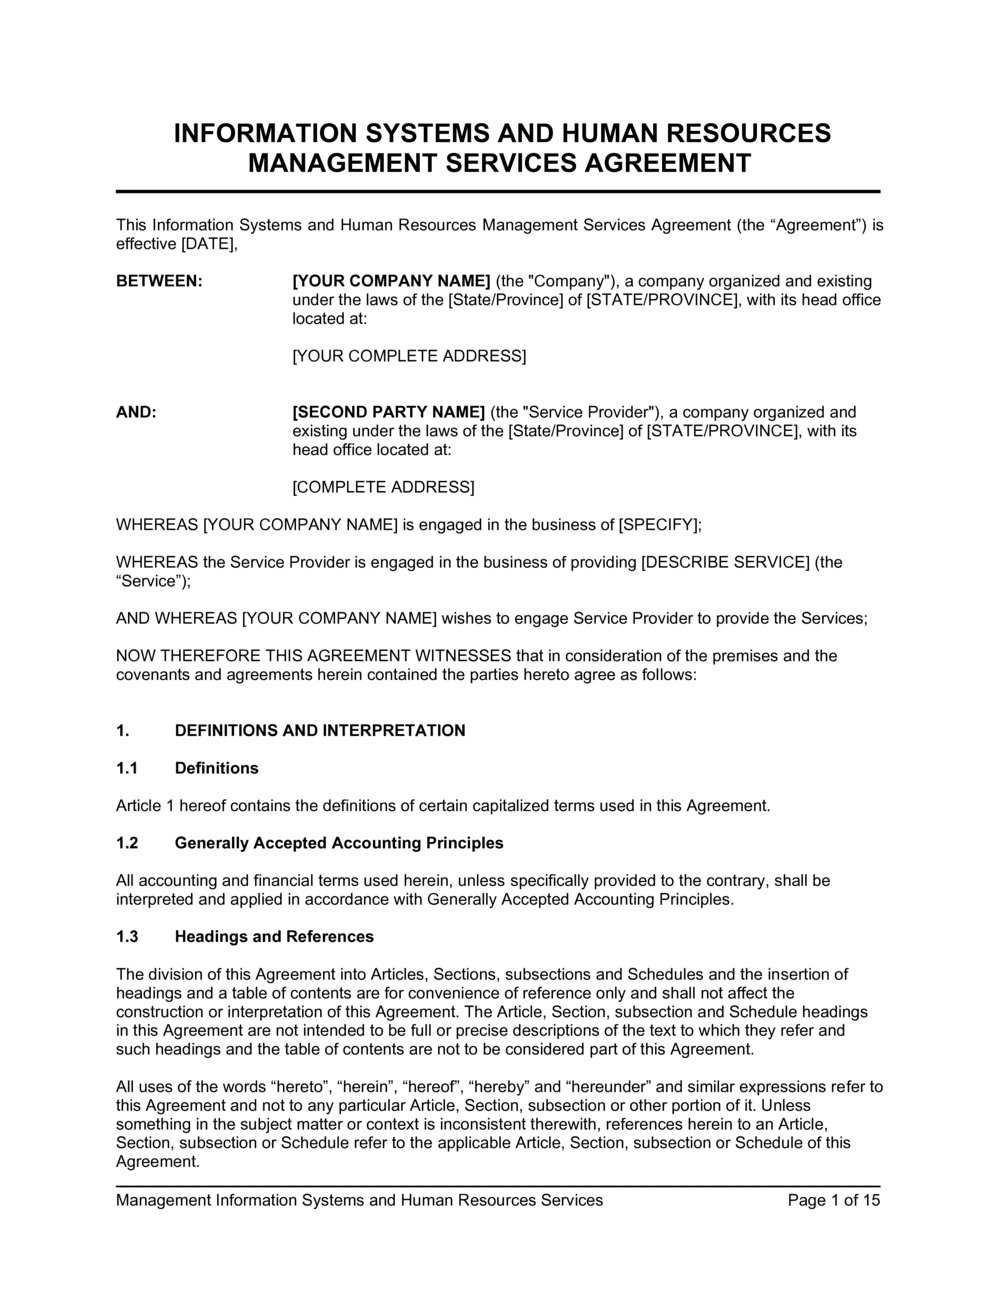 Business-in-a-Box's IT Systems & HR Management Services Agreement Template